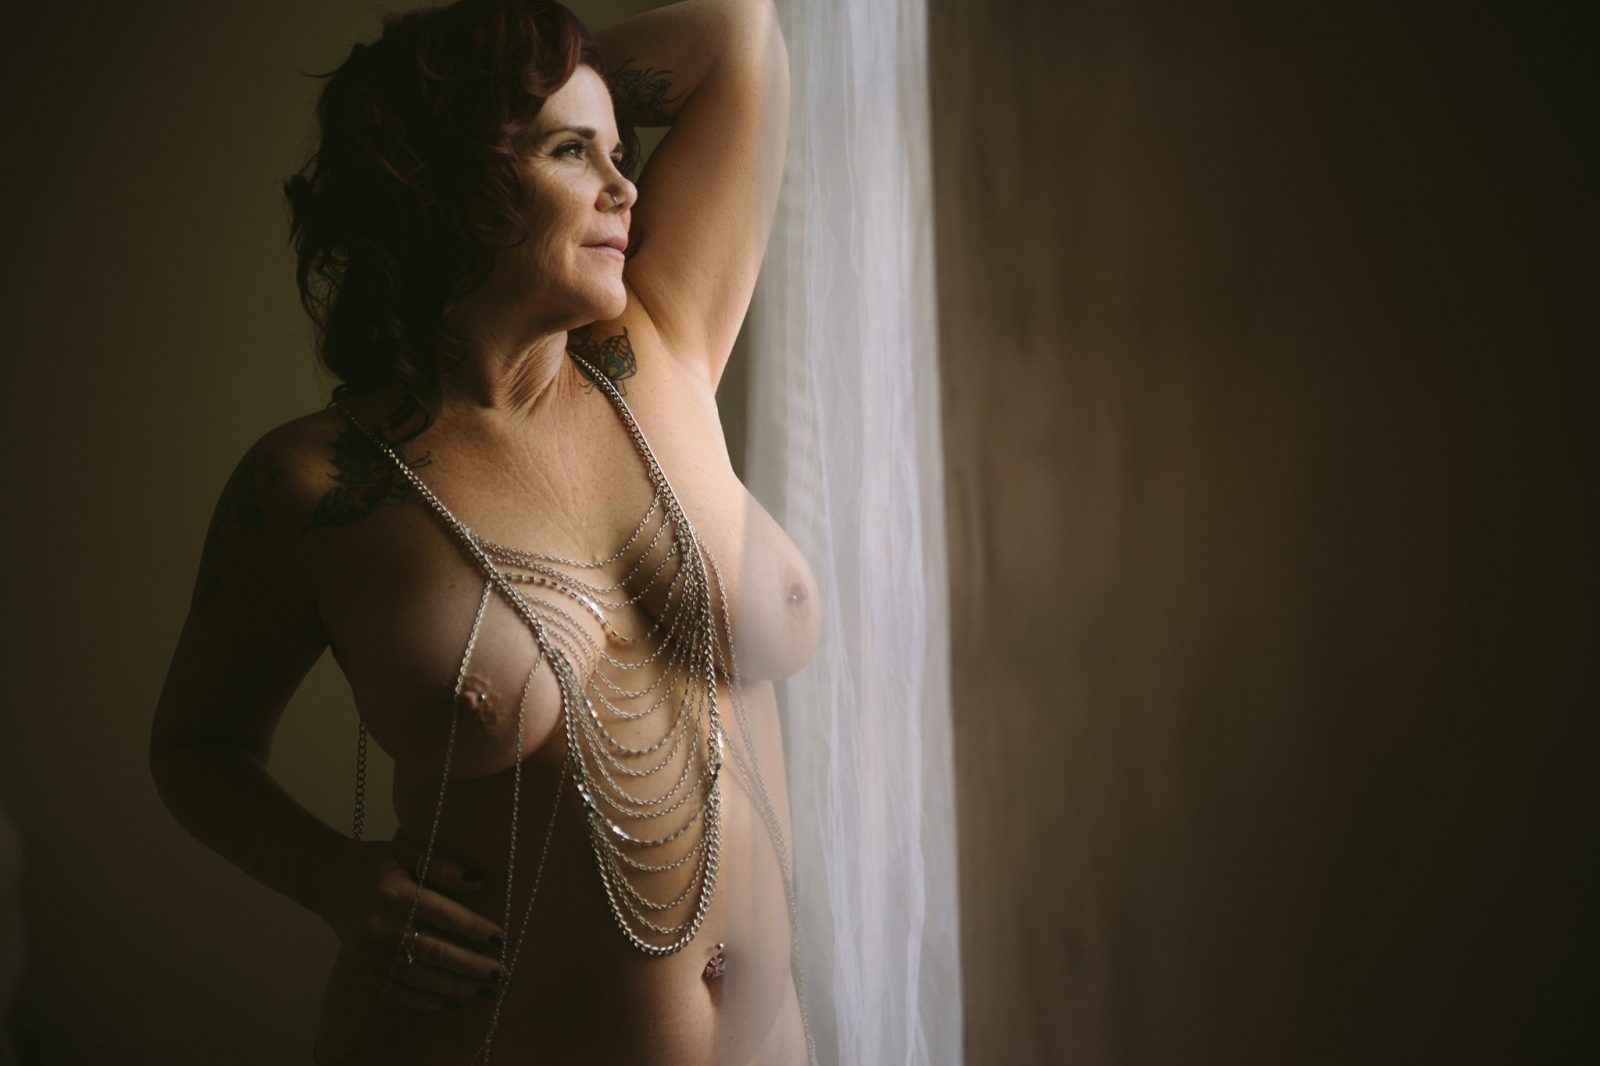 los-angeles-boudoir-photography